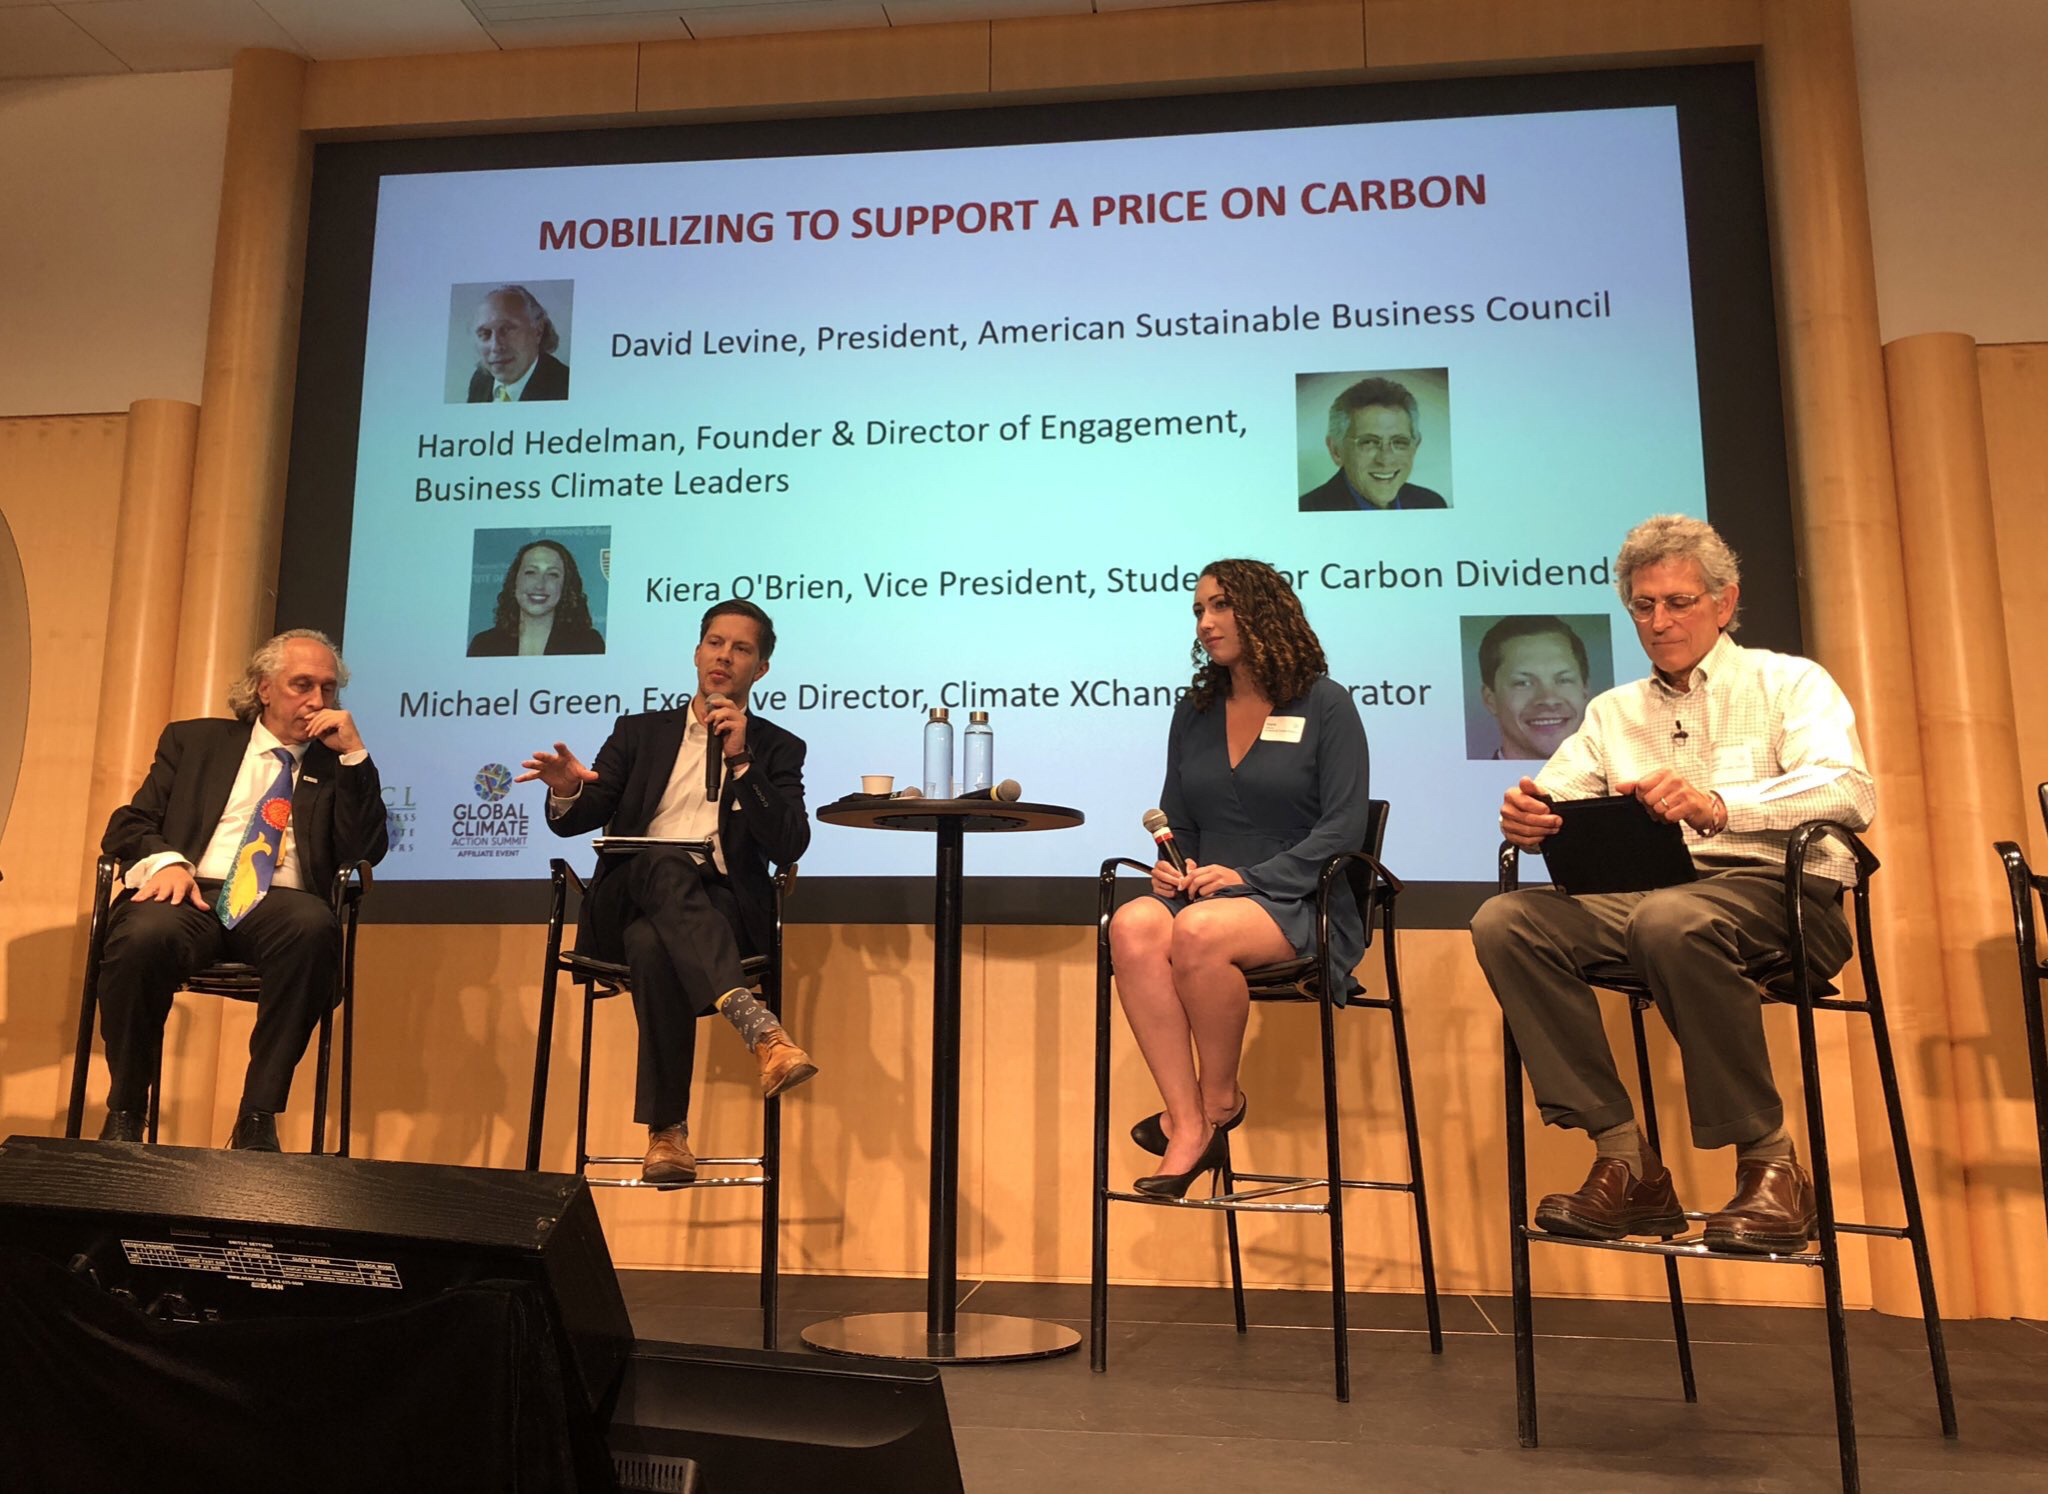 Climate XChange Executive Director Michael Green speaking on a panel at a carbon pricing conference in Washington, D.C.